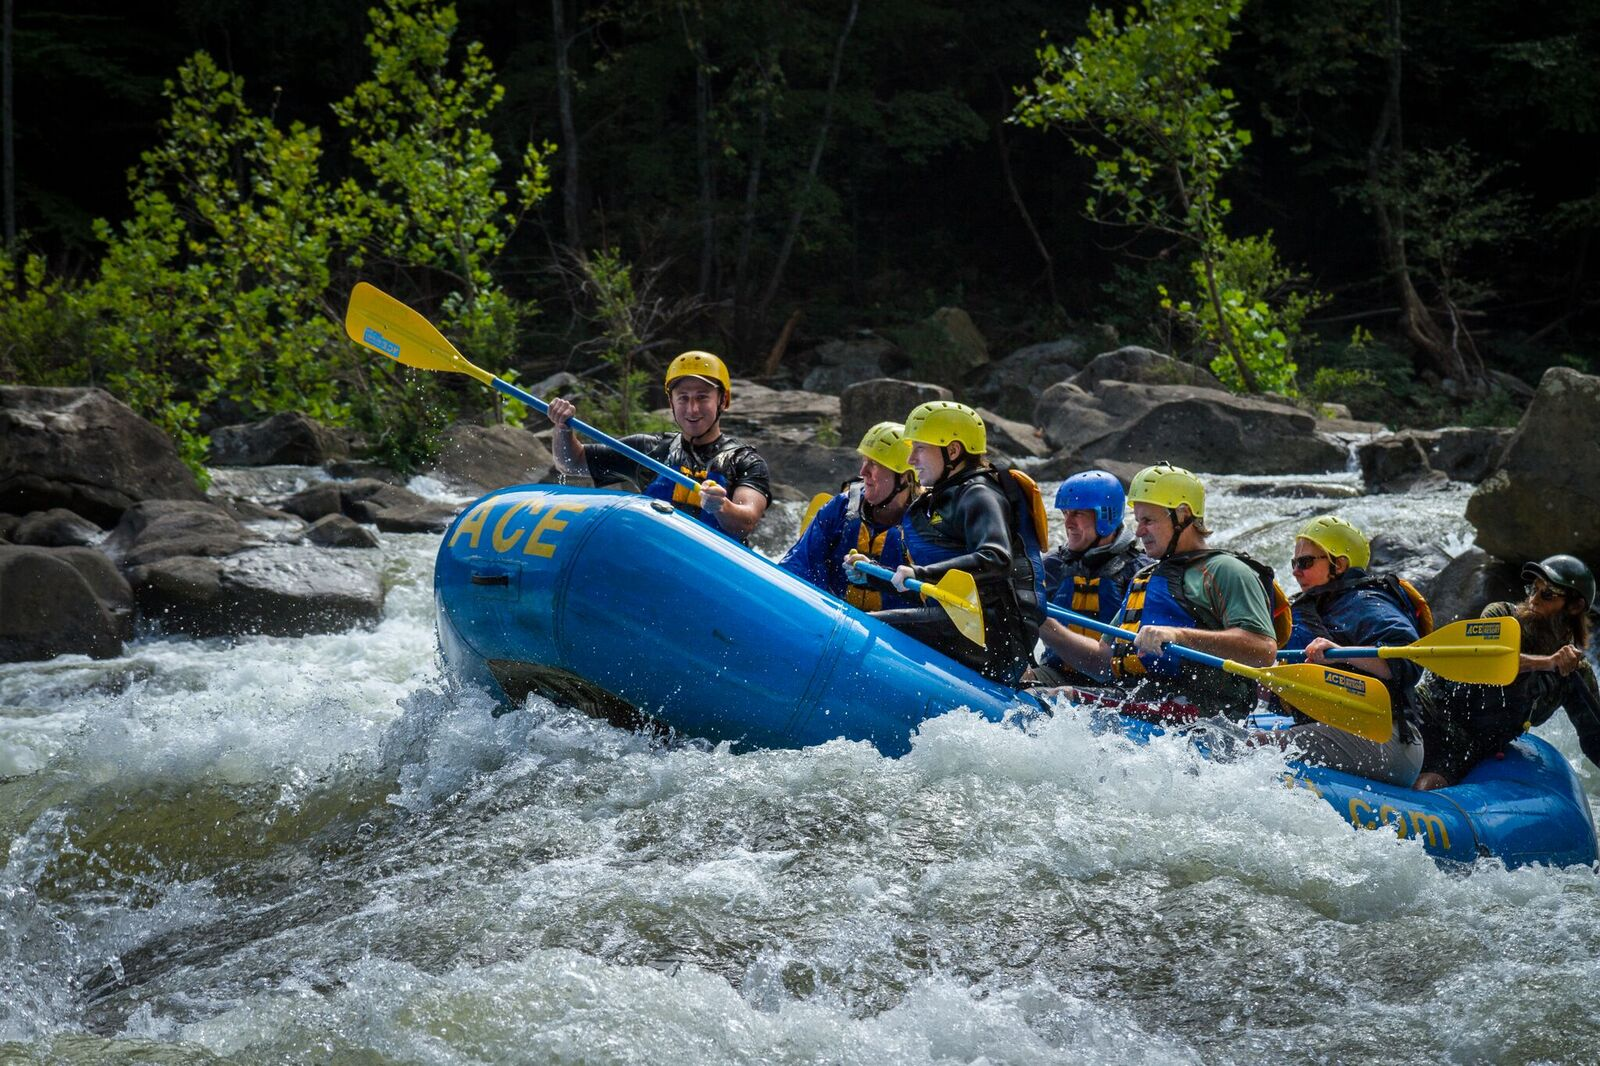 A group of 6 riding over a rapid on an ACE Adventure lower gauley rafting trip